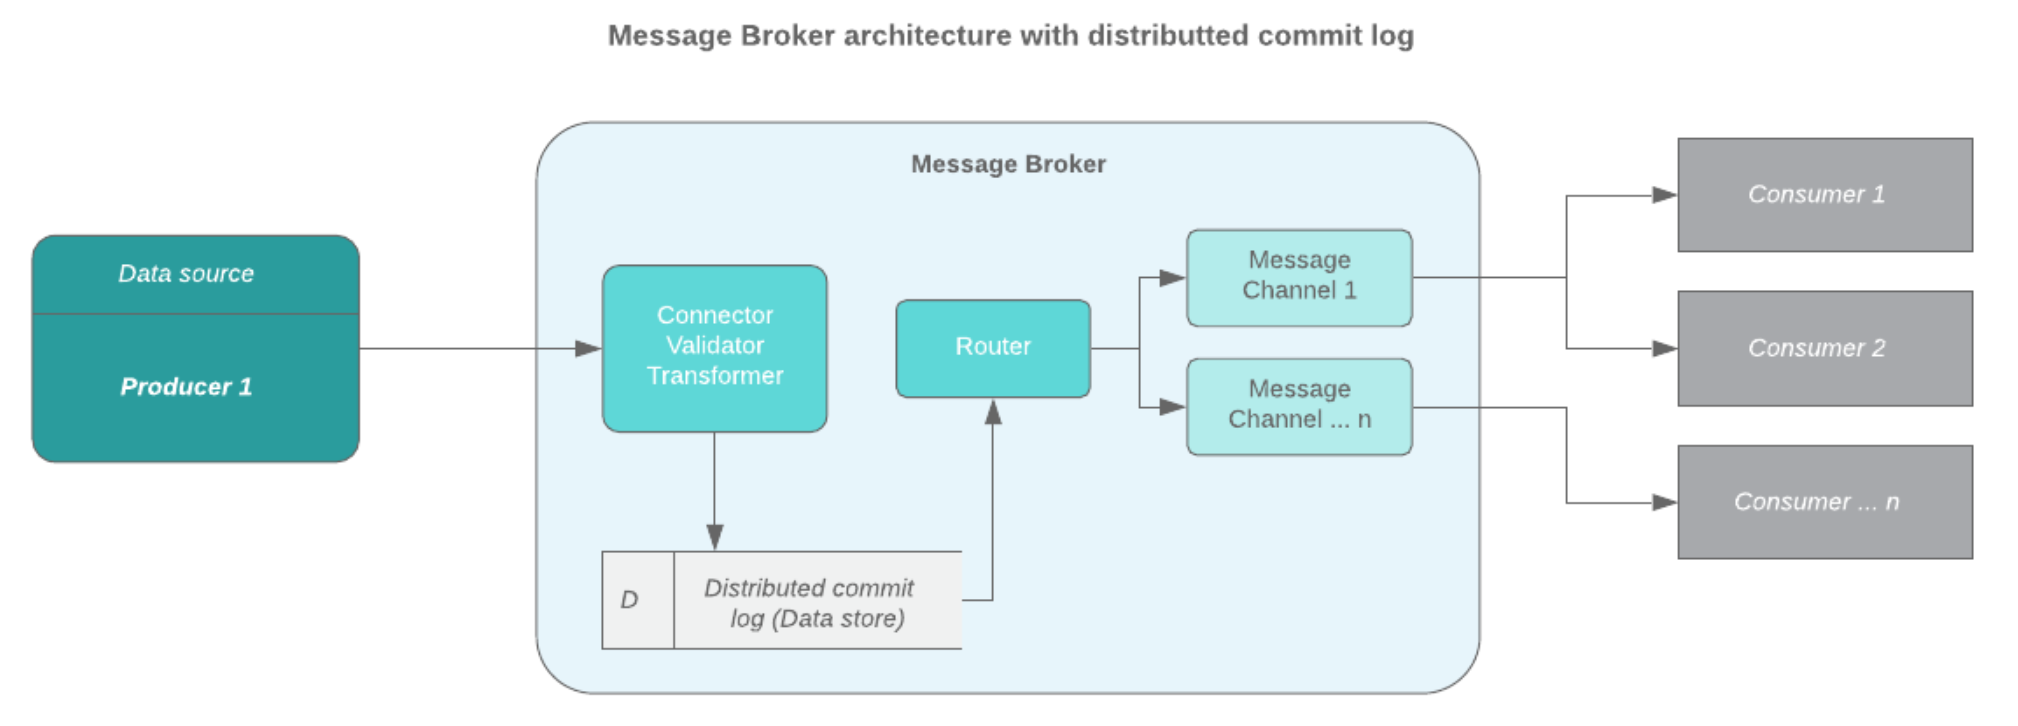 Message Broker architecture with distributed commit log